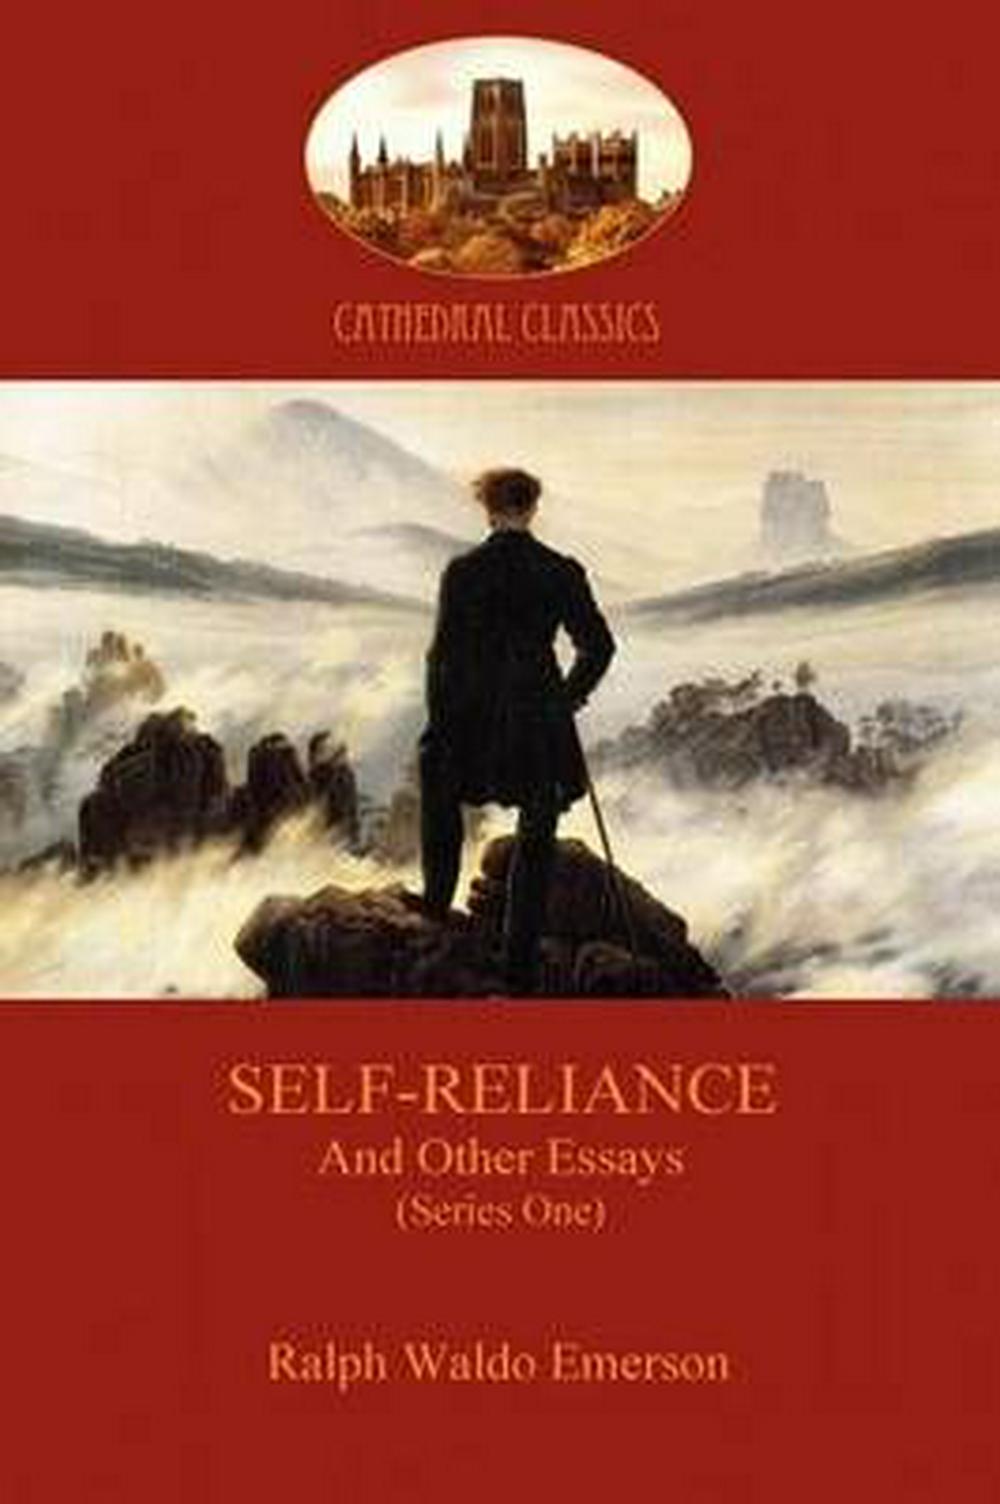 015 Essay Example Self Reliance And Other Essays Formidable Ekşi Self-reliance (dover Thrift Editions) Pdf Epub Full